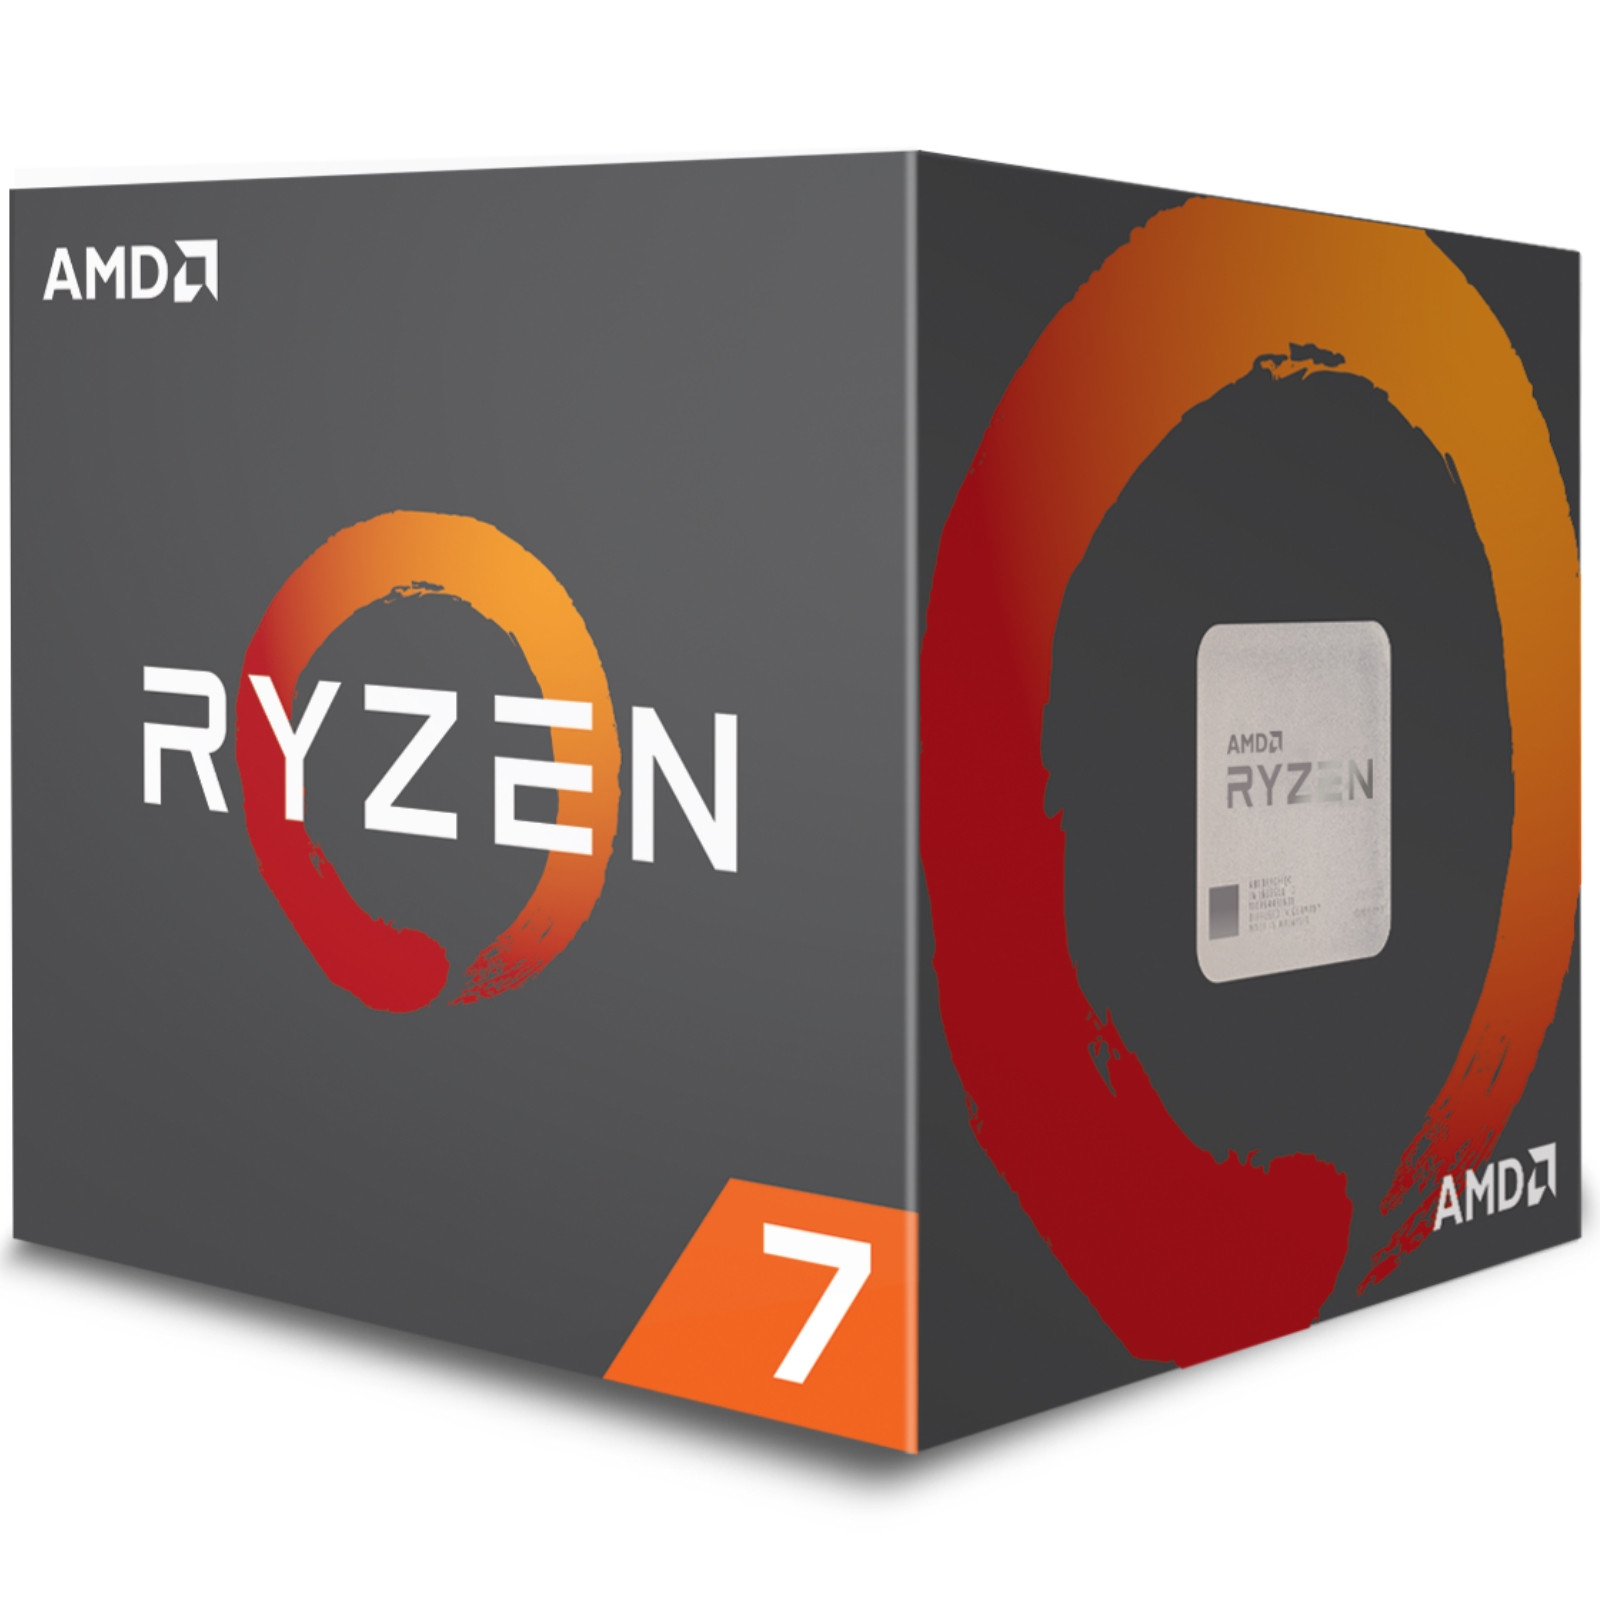 Buy the AMD Ryzen 7 2700 8 Core,16 Threads, up to 4 1 GHz Precision